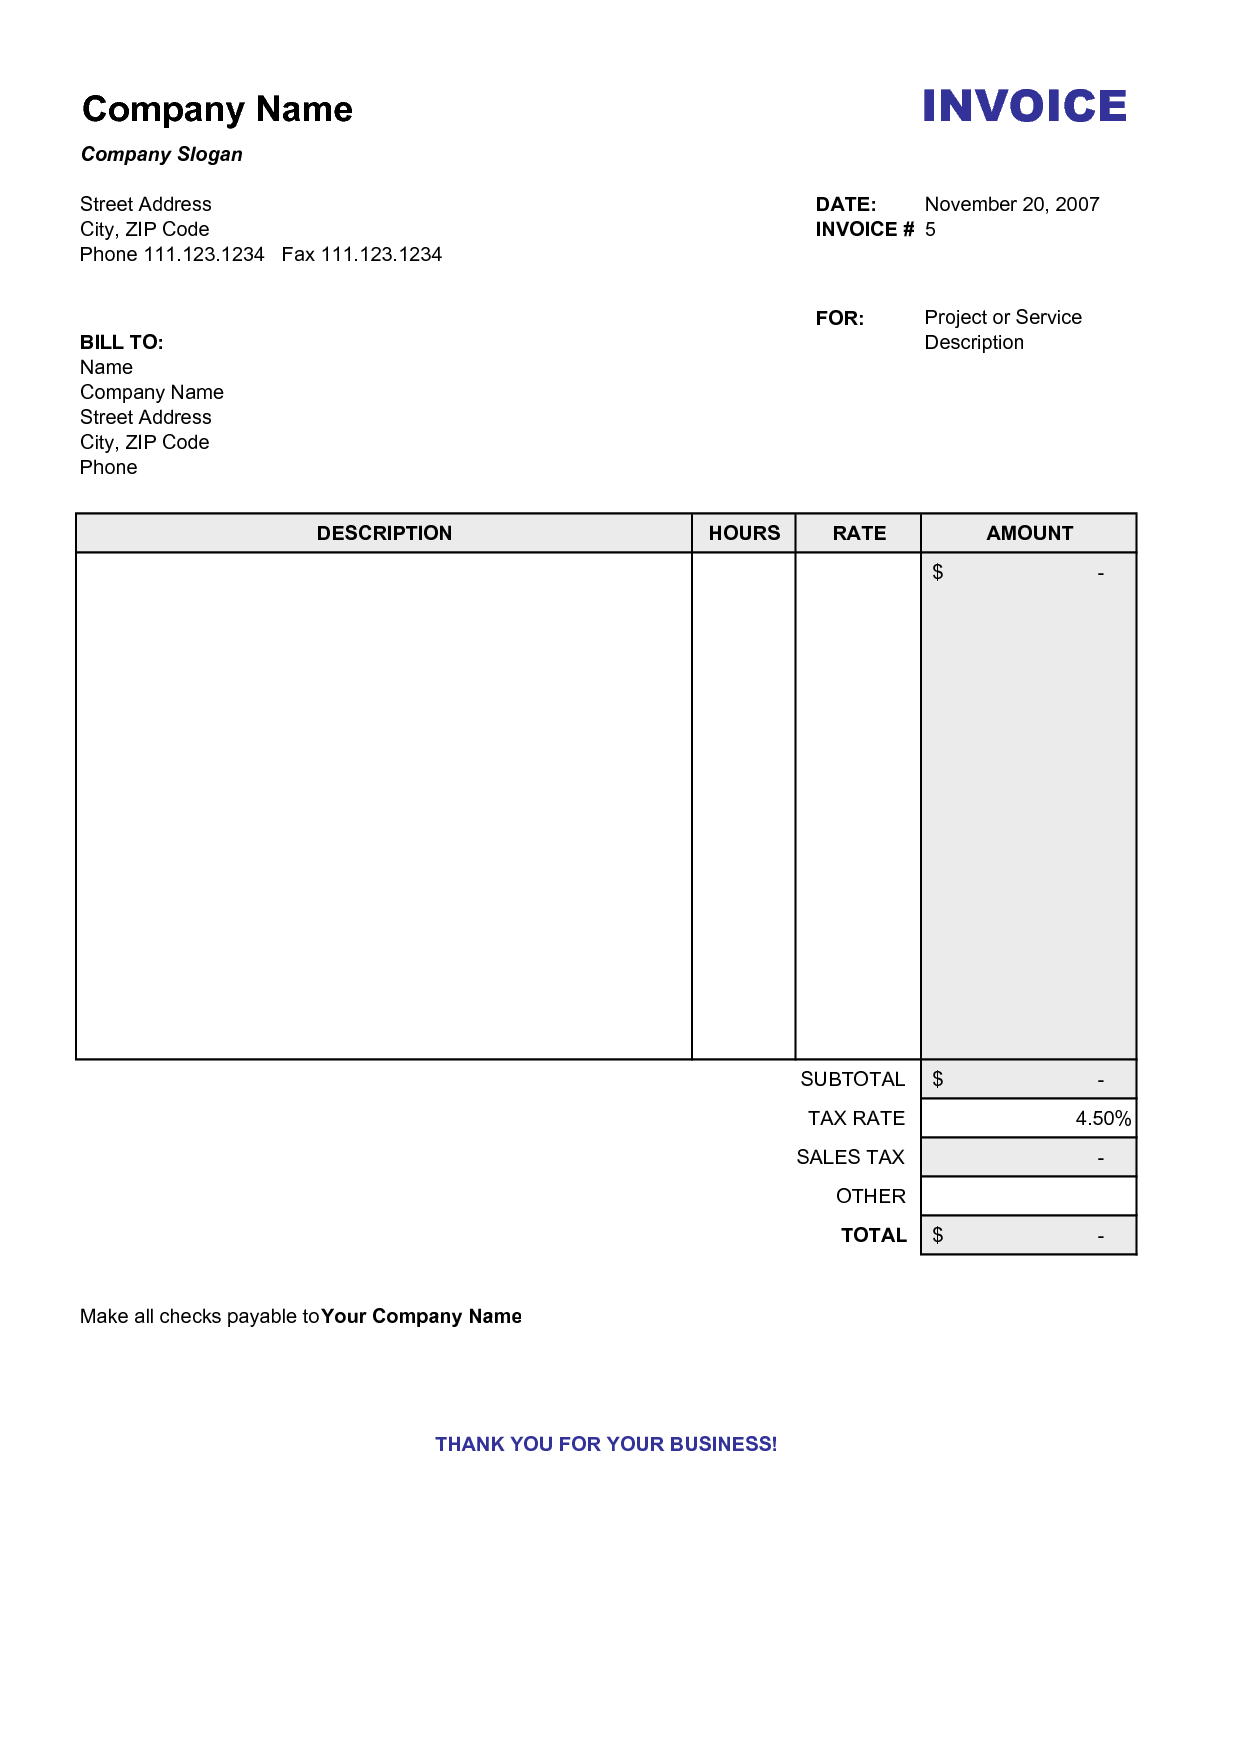 Tax Invoice Australia Blank Billing Invoice  Scope Of Work Template  Organization  Receipt Template Microsoft with Invoice Means What Pdf Blank Billing Invoice  Scope Of Work Template Gmc Sierra Invoice Price